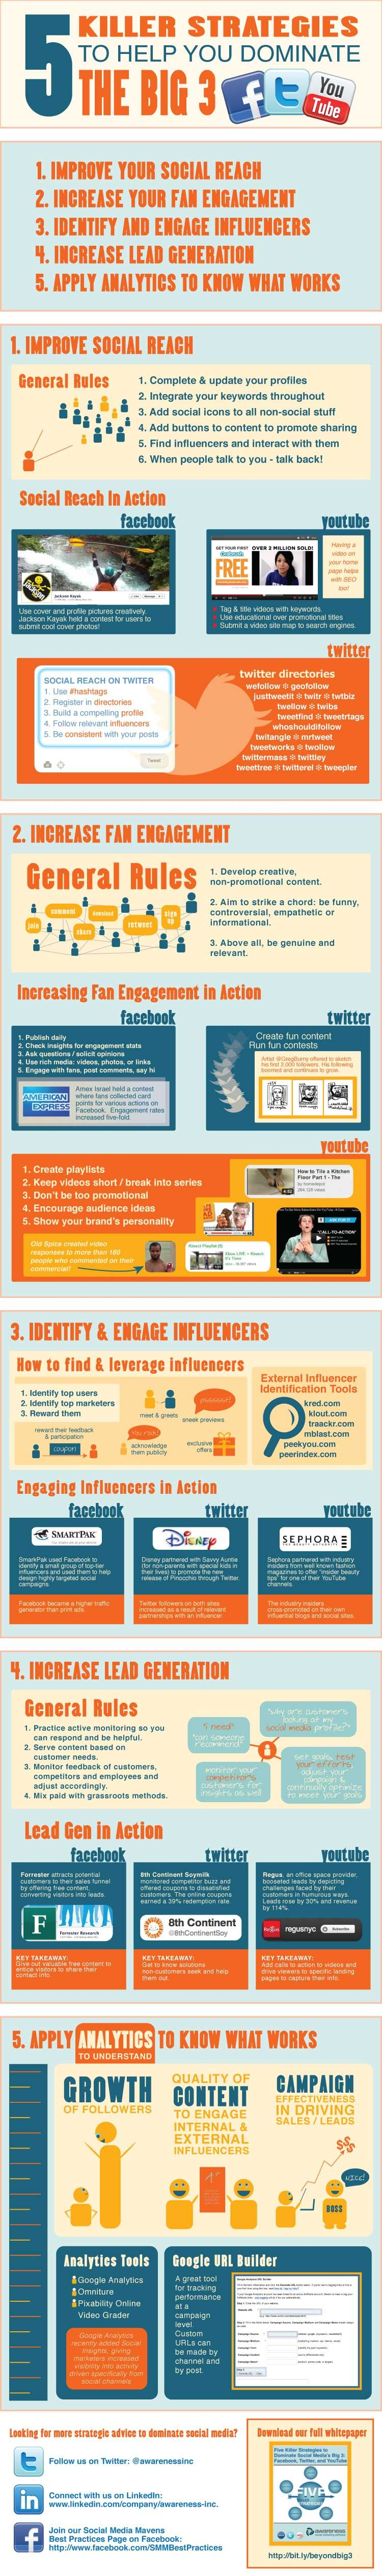 5 Killer Strategies to Dominate Facebook, Twitter and YouTube